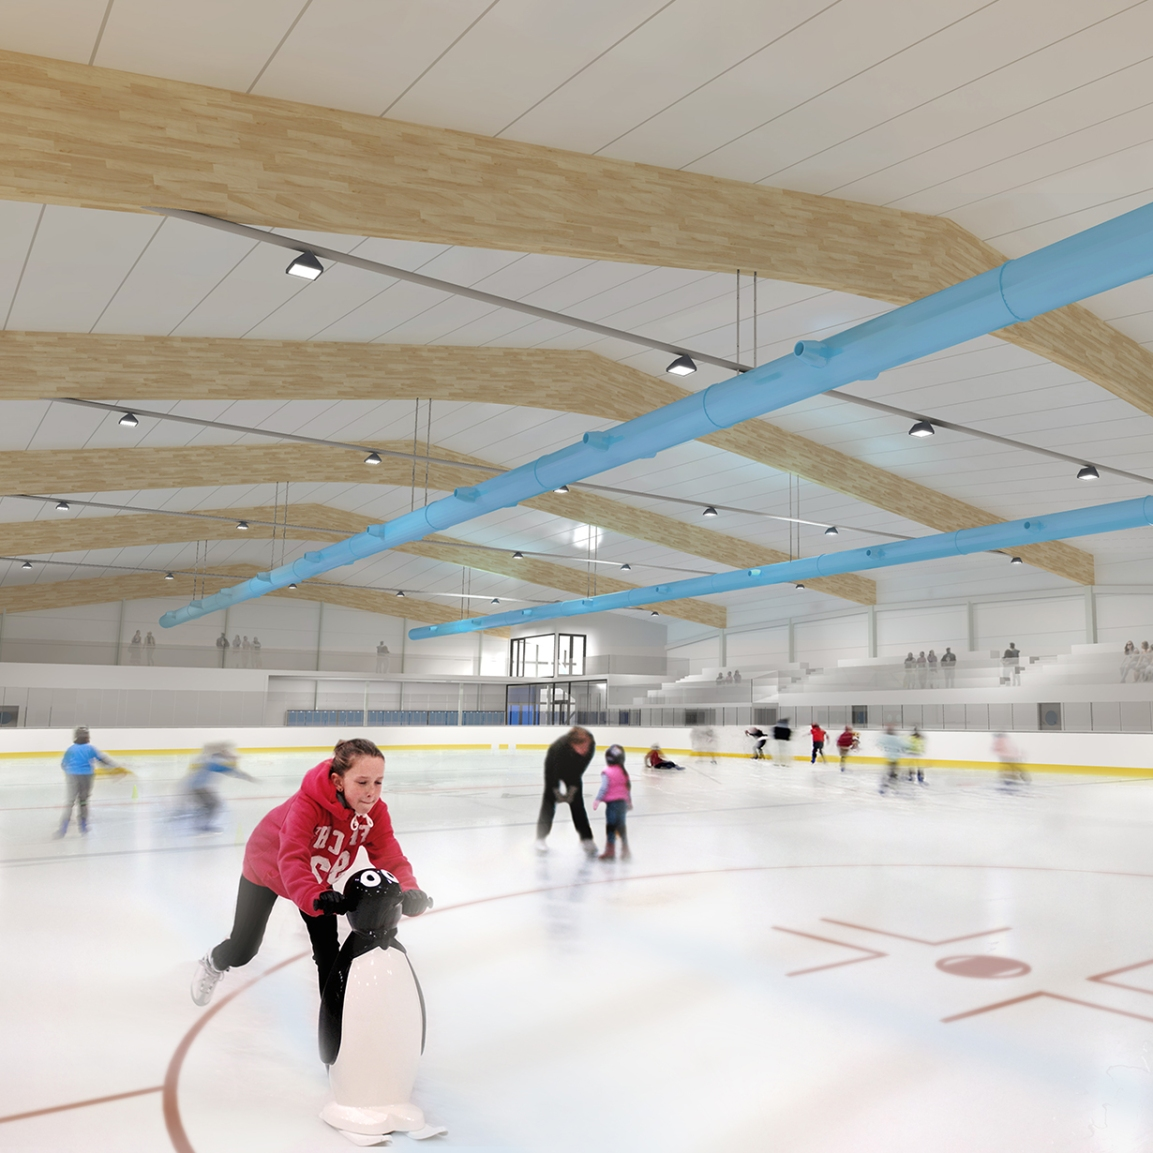 Cambridge Ice Arena design features